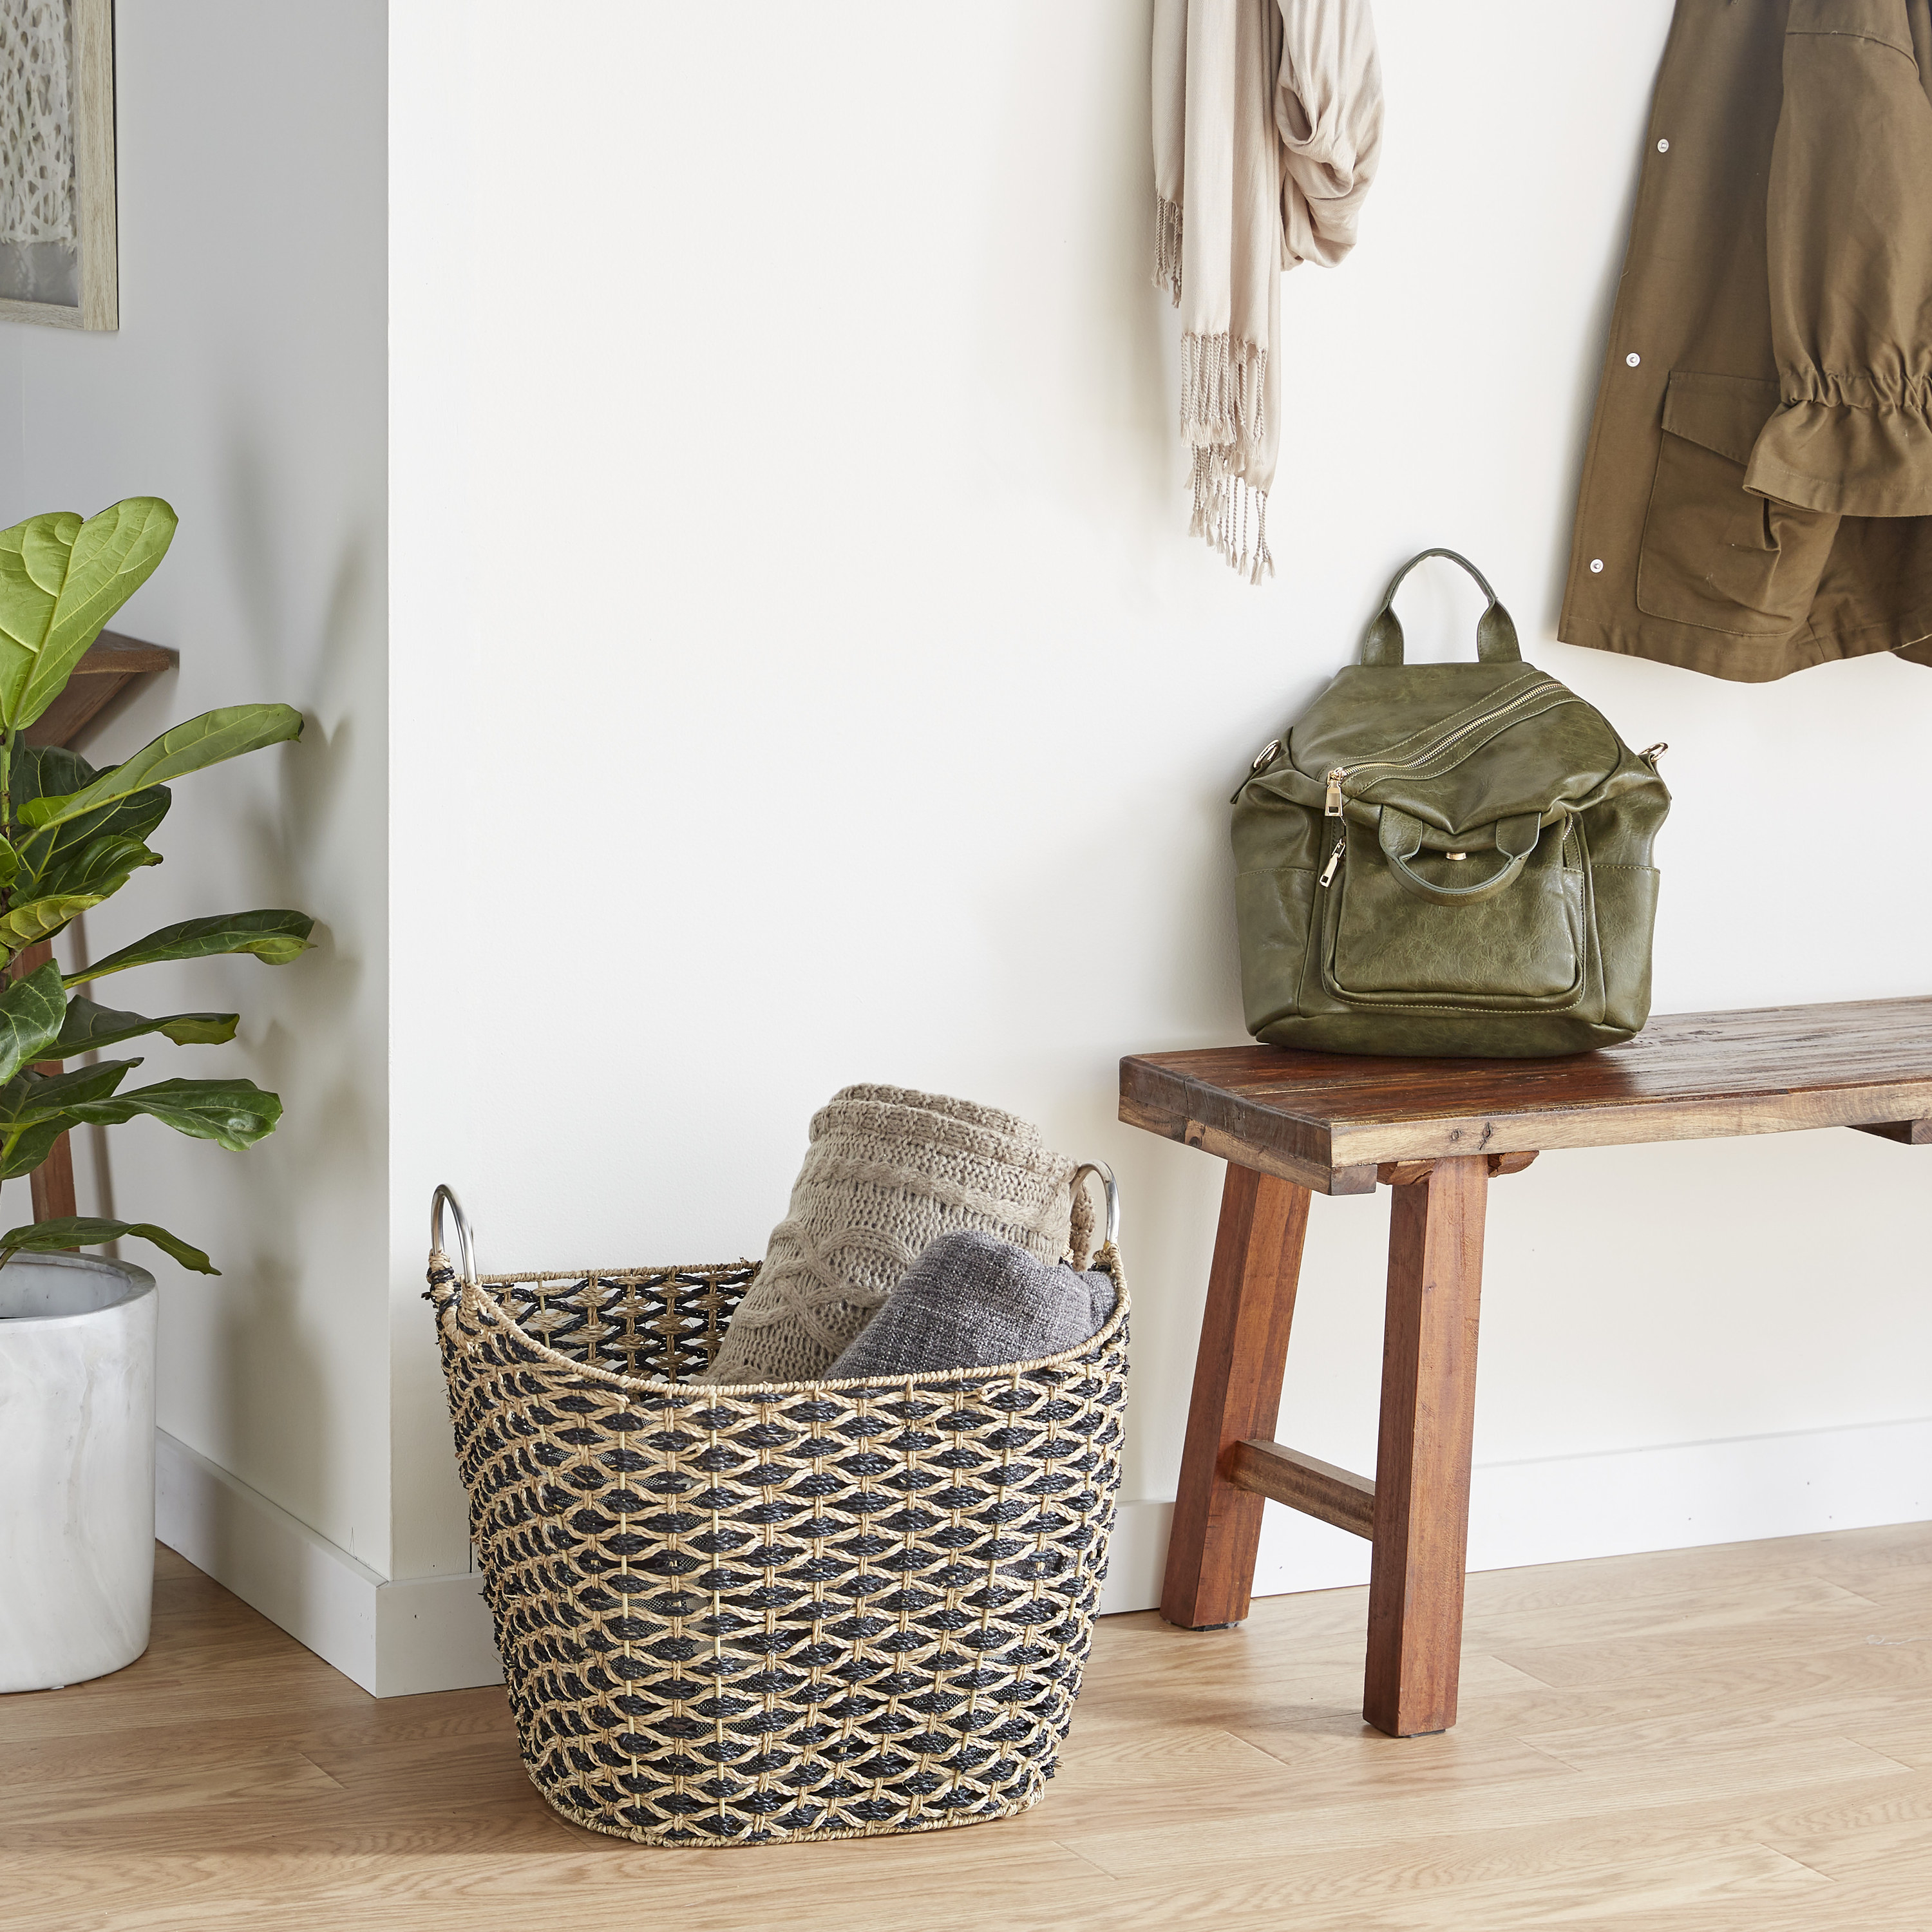 the wicker storage basket displayed next to a wooden bench with blankets inside of it